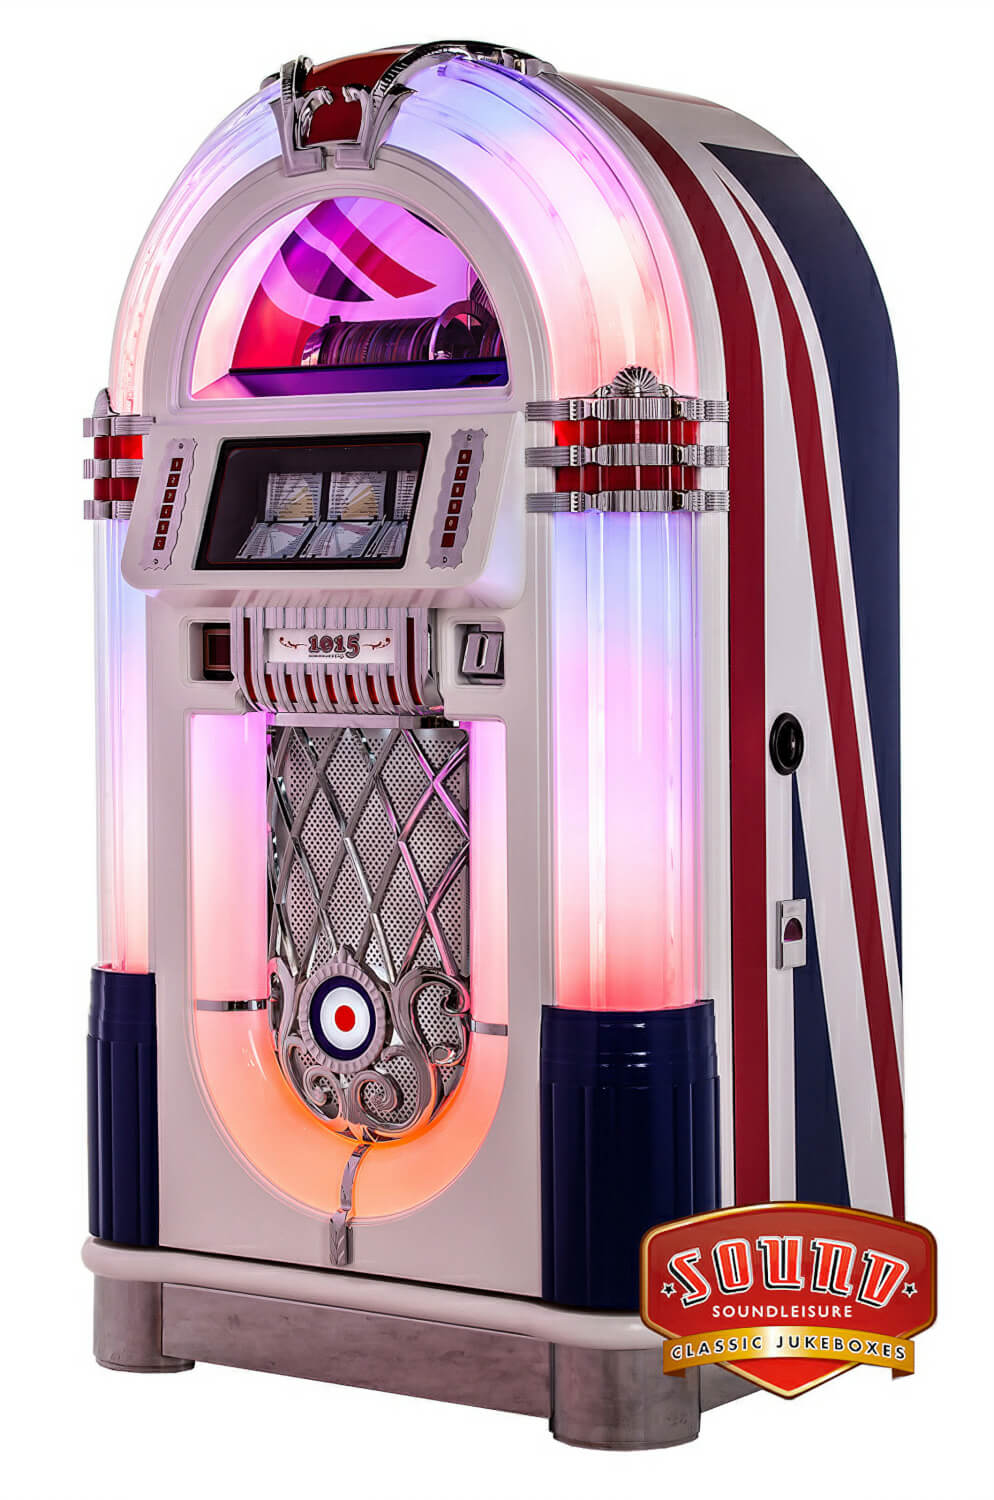 Sound Leisure Juke Britannia Cd Jukebox Liberty Games